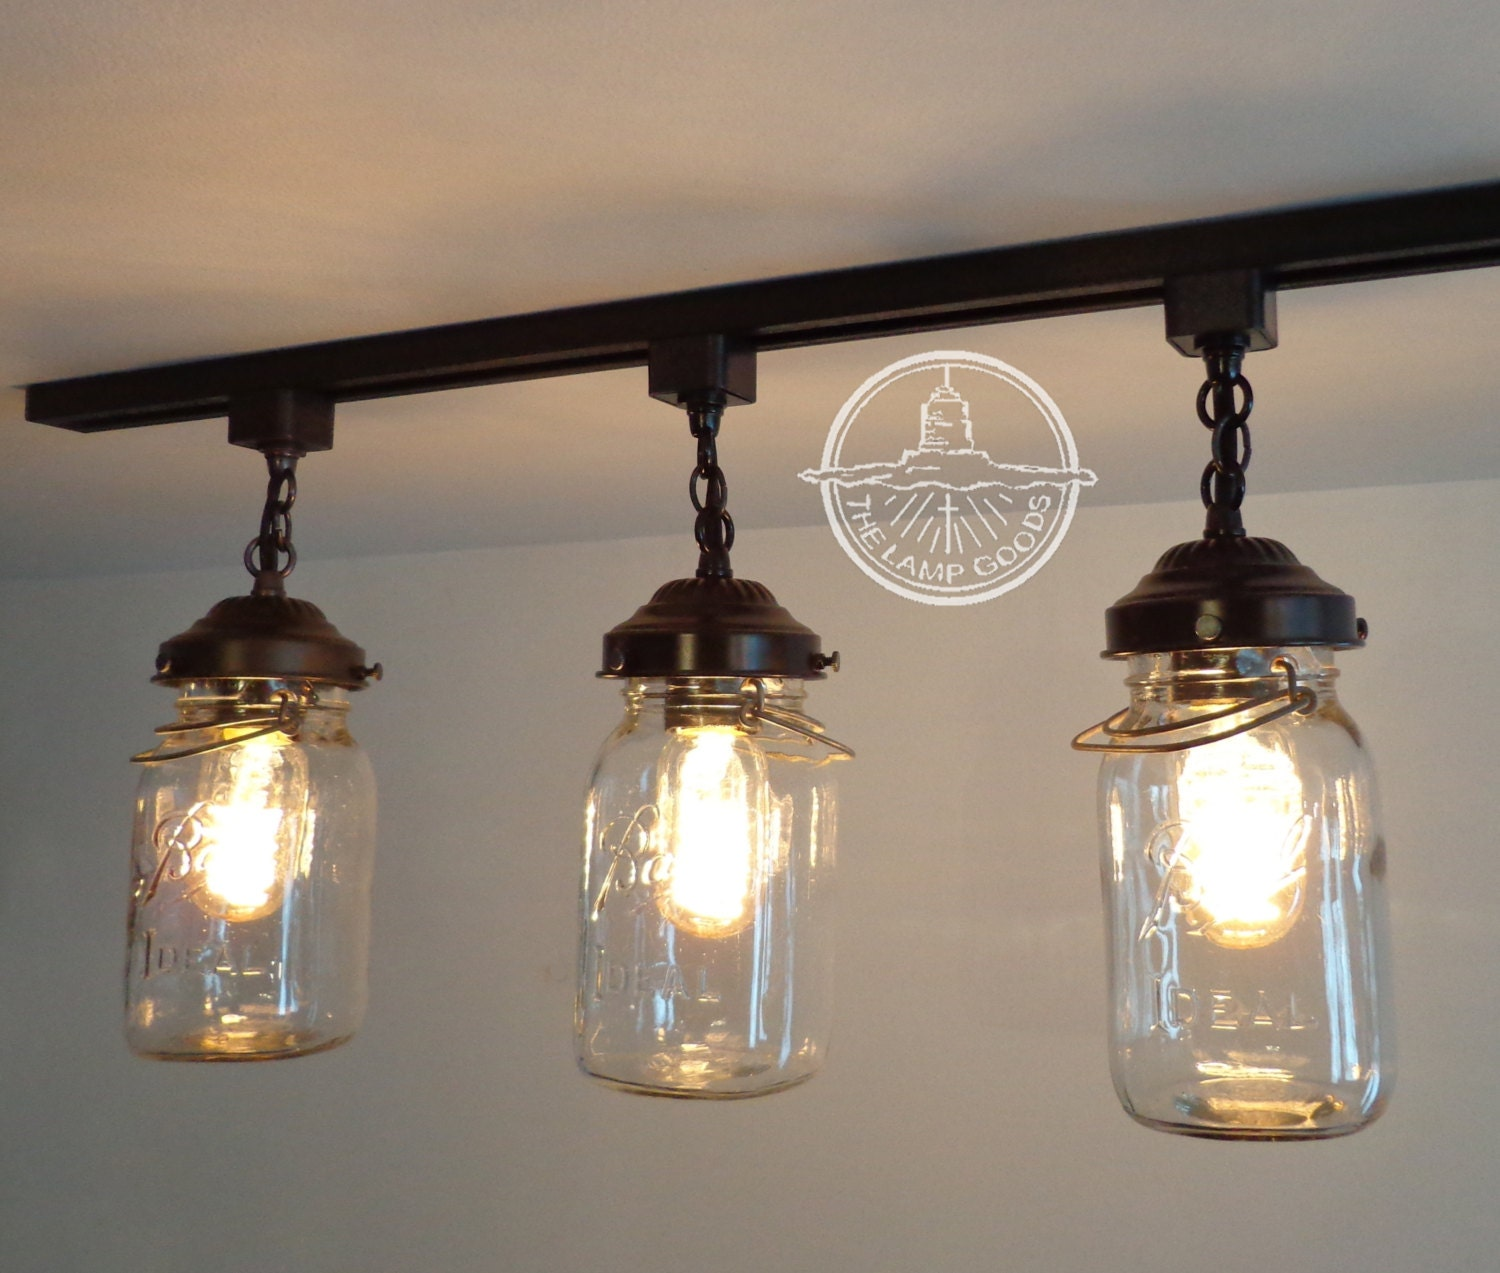 Flush mount ceiling light mason jar track lighting fixture zoom mozeypictures Gallery